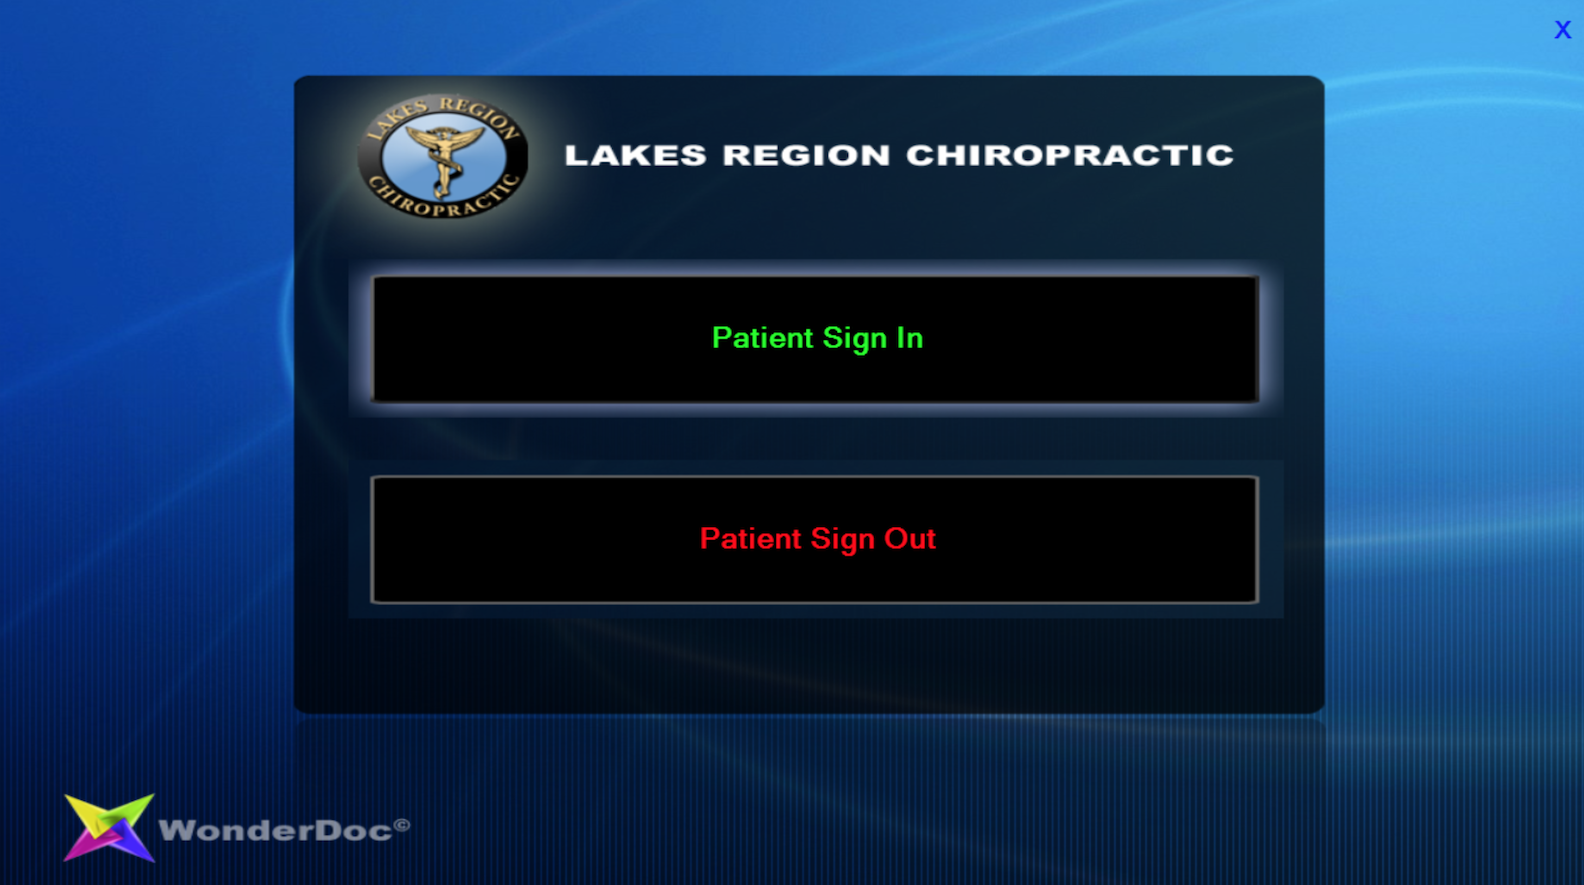 Patient sign in/out